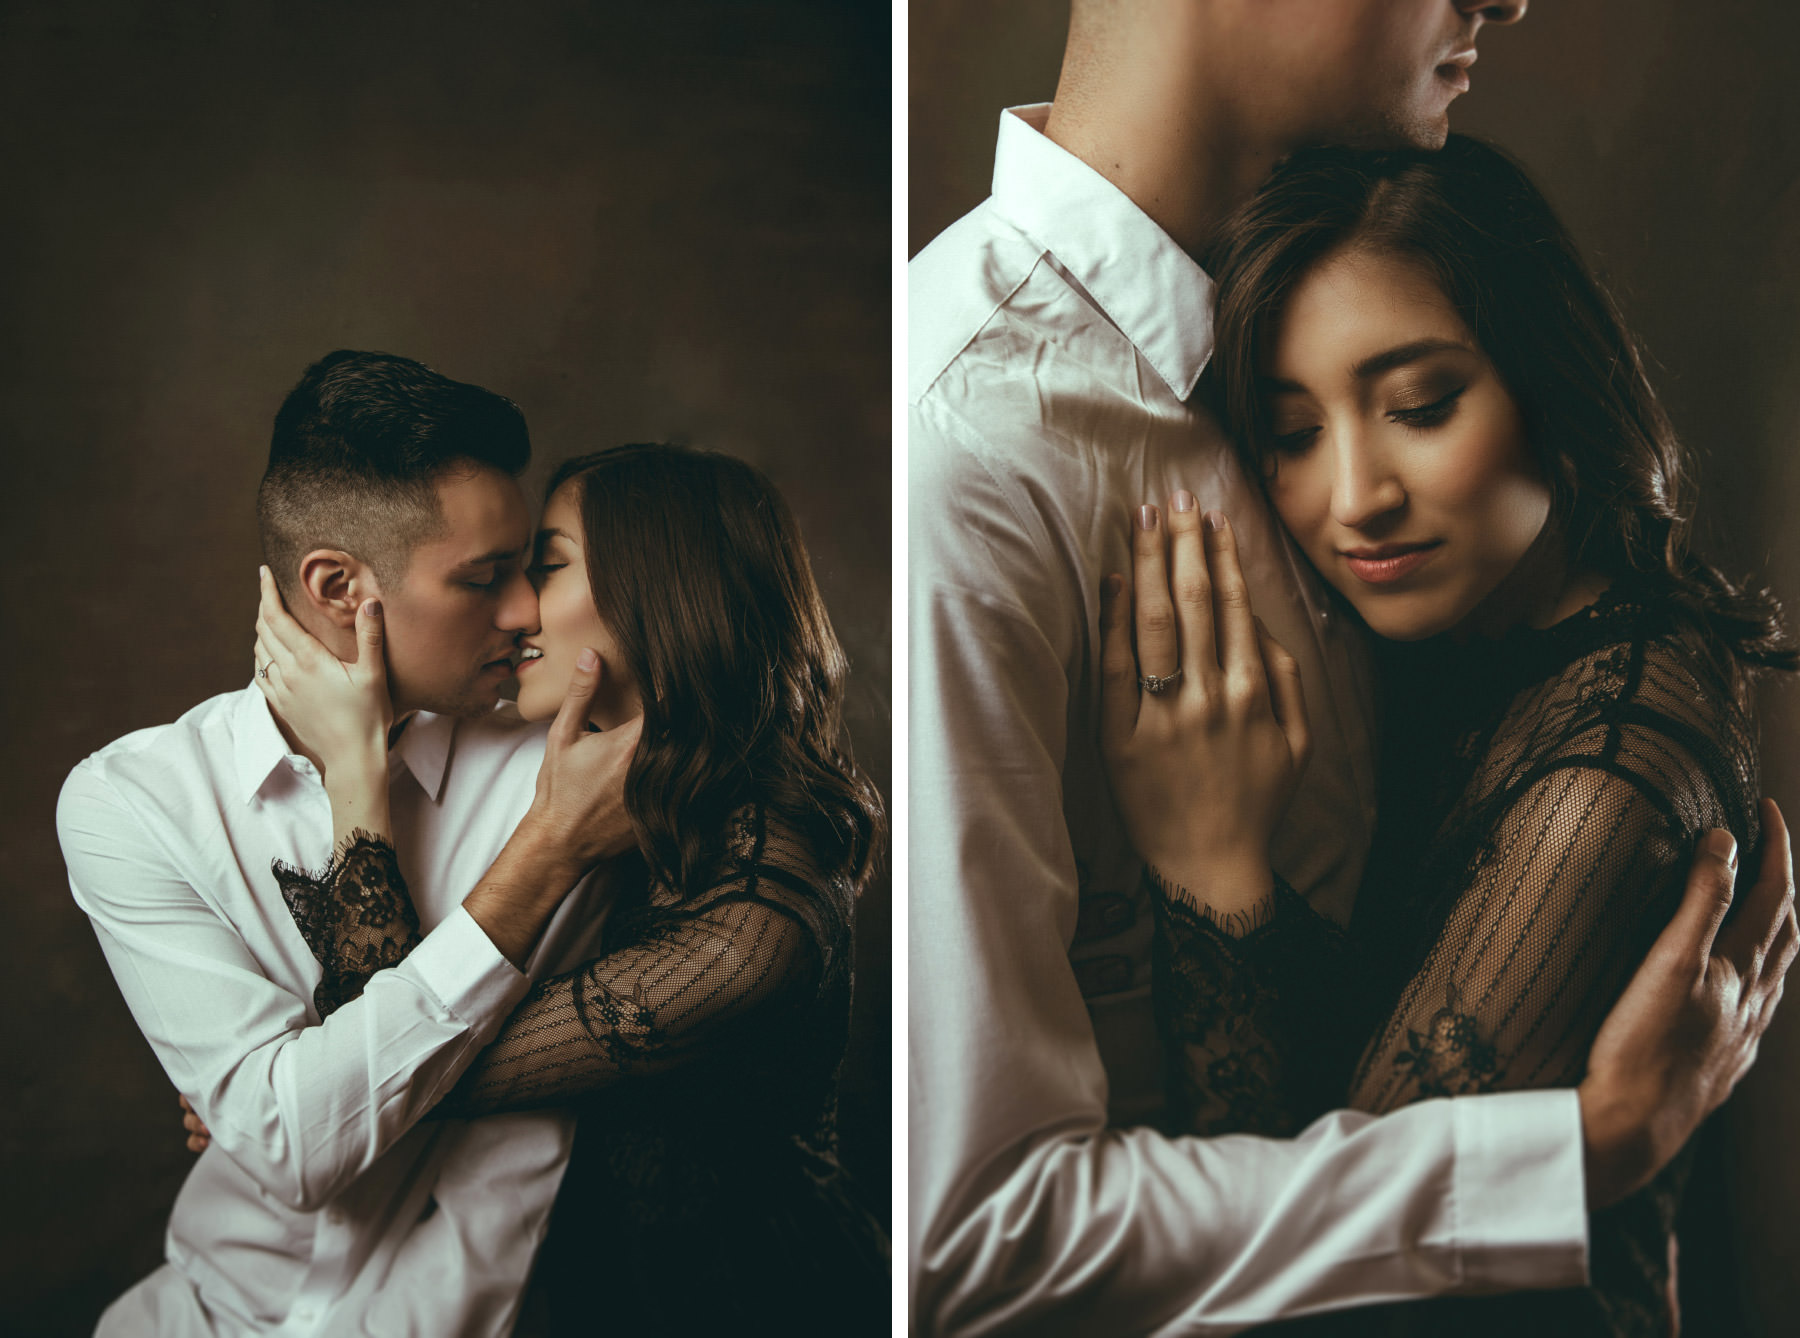 Fashionable couple kissing against dark studio backdrop